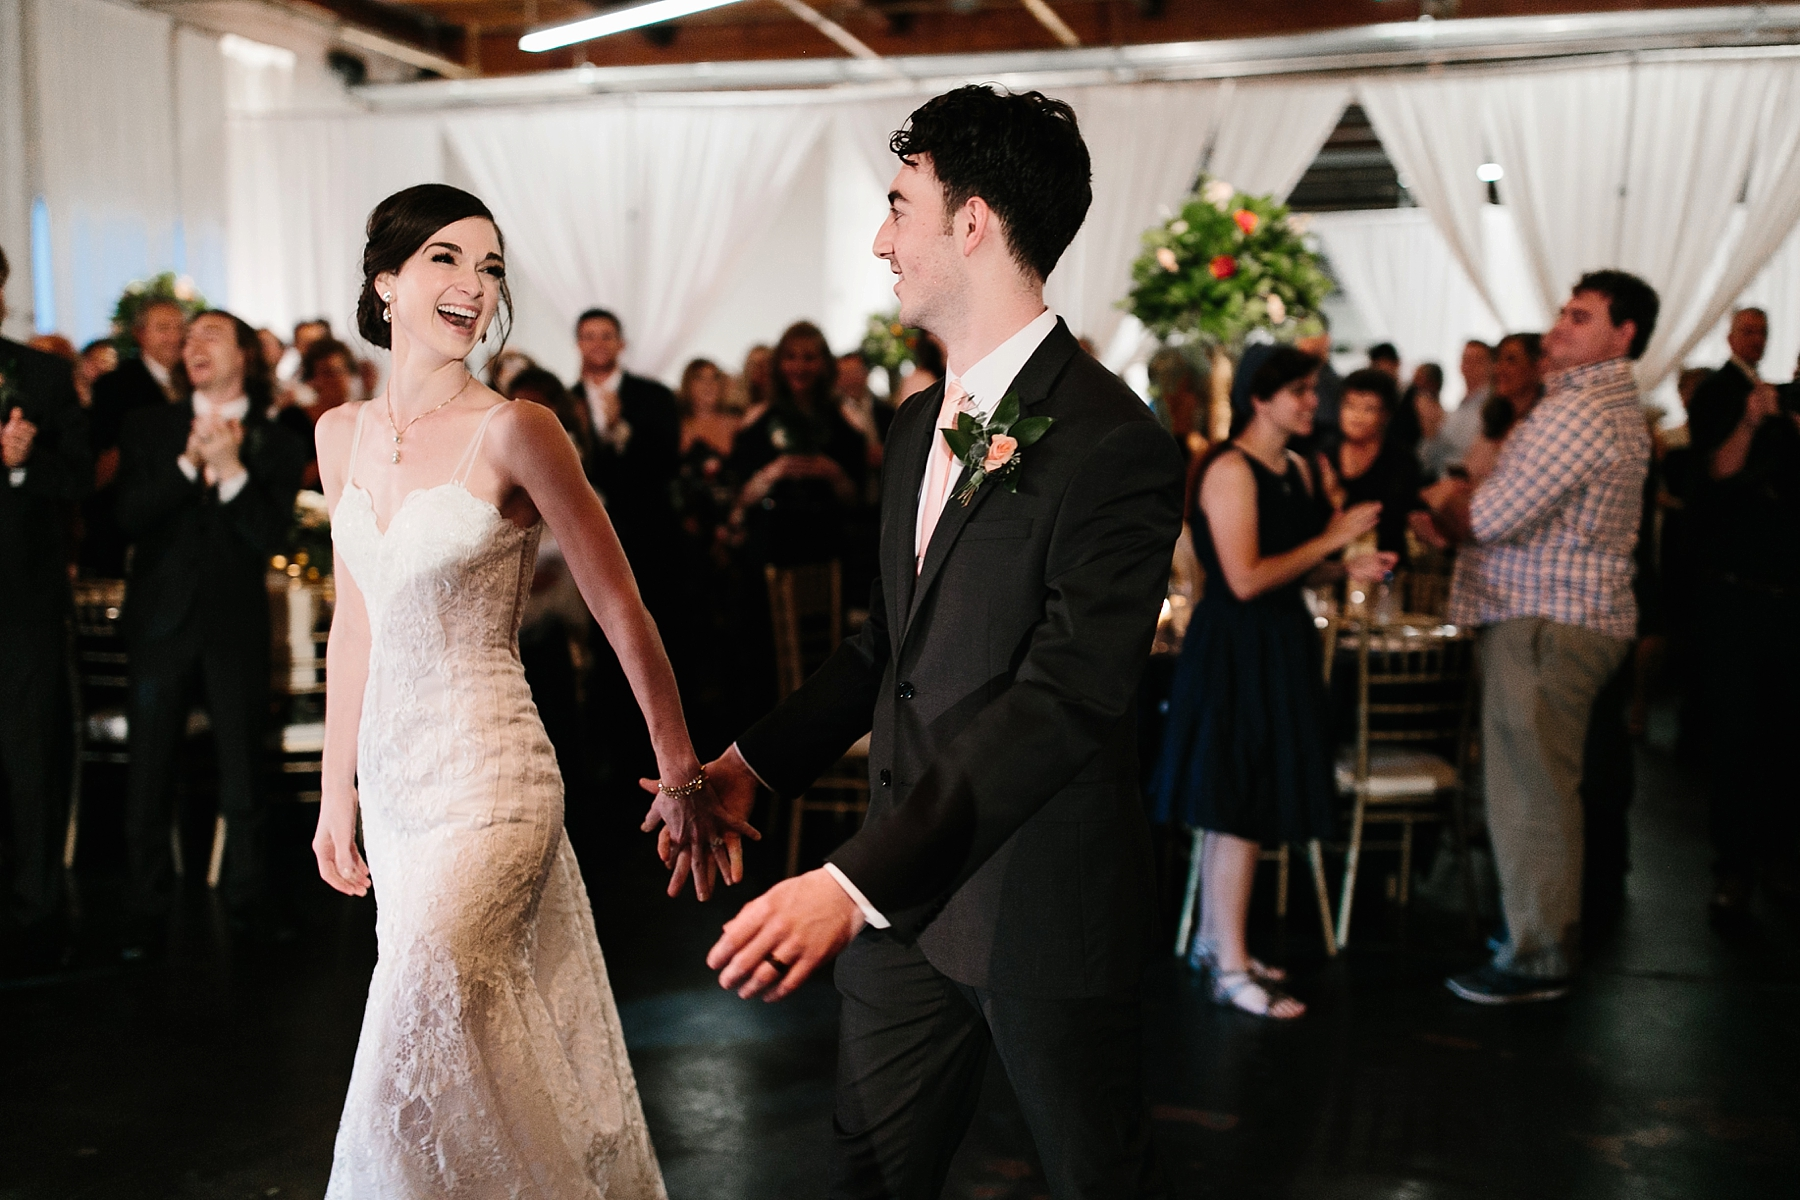 Emily + Caleb _ an elegant, intentional, industrial style wedding with navy + gold accents at 6500 in Dallas, TX by North Texas Wedding Photographer Rachel Meagan Photography _ 134